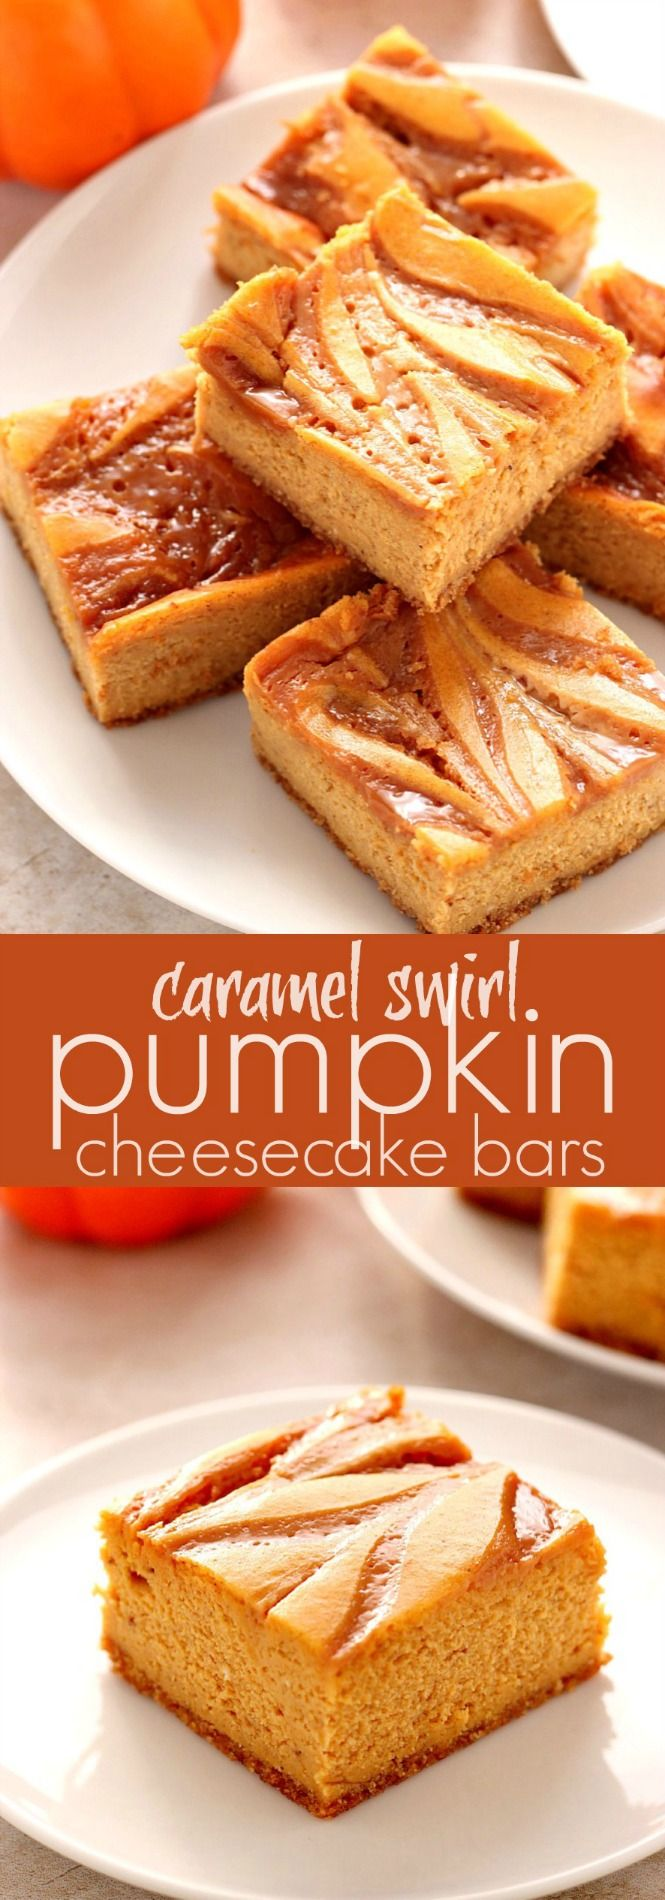 Caramel Swirl Pumpkin Cheesecake Bars - sweet and creamy cheesecake bars with pumpkin, spice and caramel swirl! A must make dessert this season!